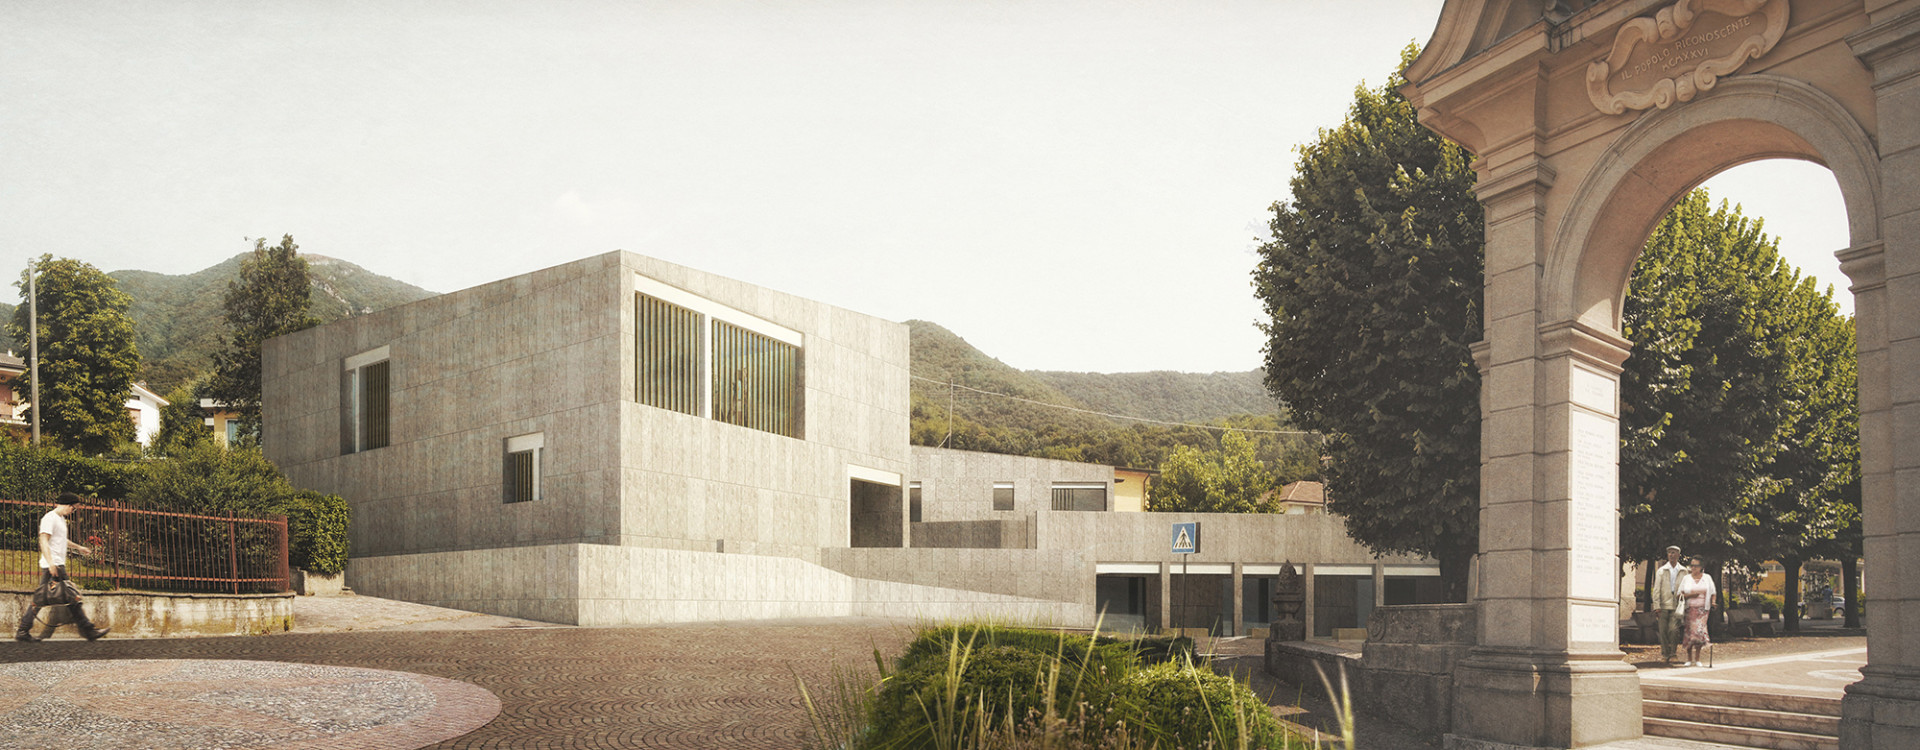 2 Wisp-Architects-Comune Cenate Sopra-Render